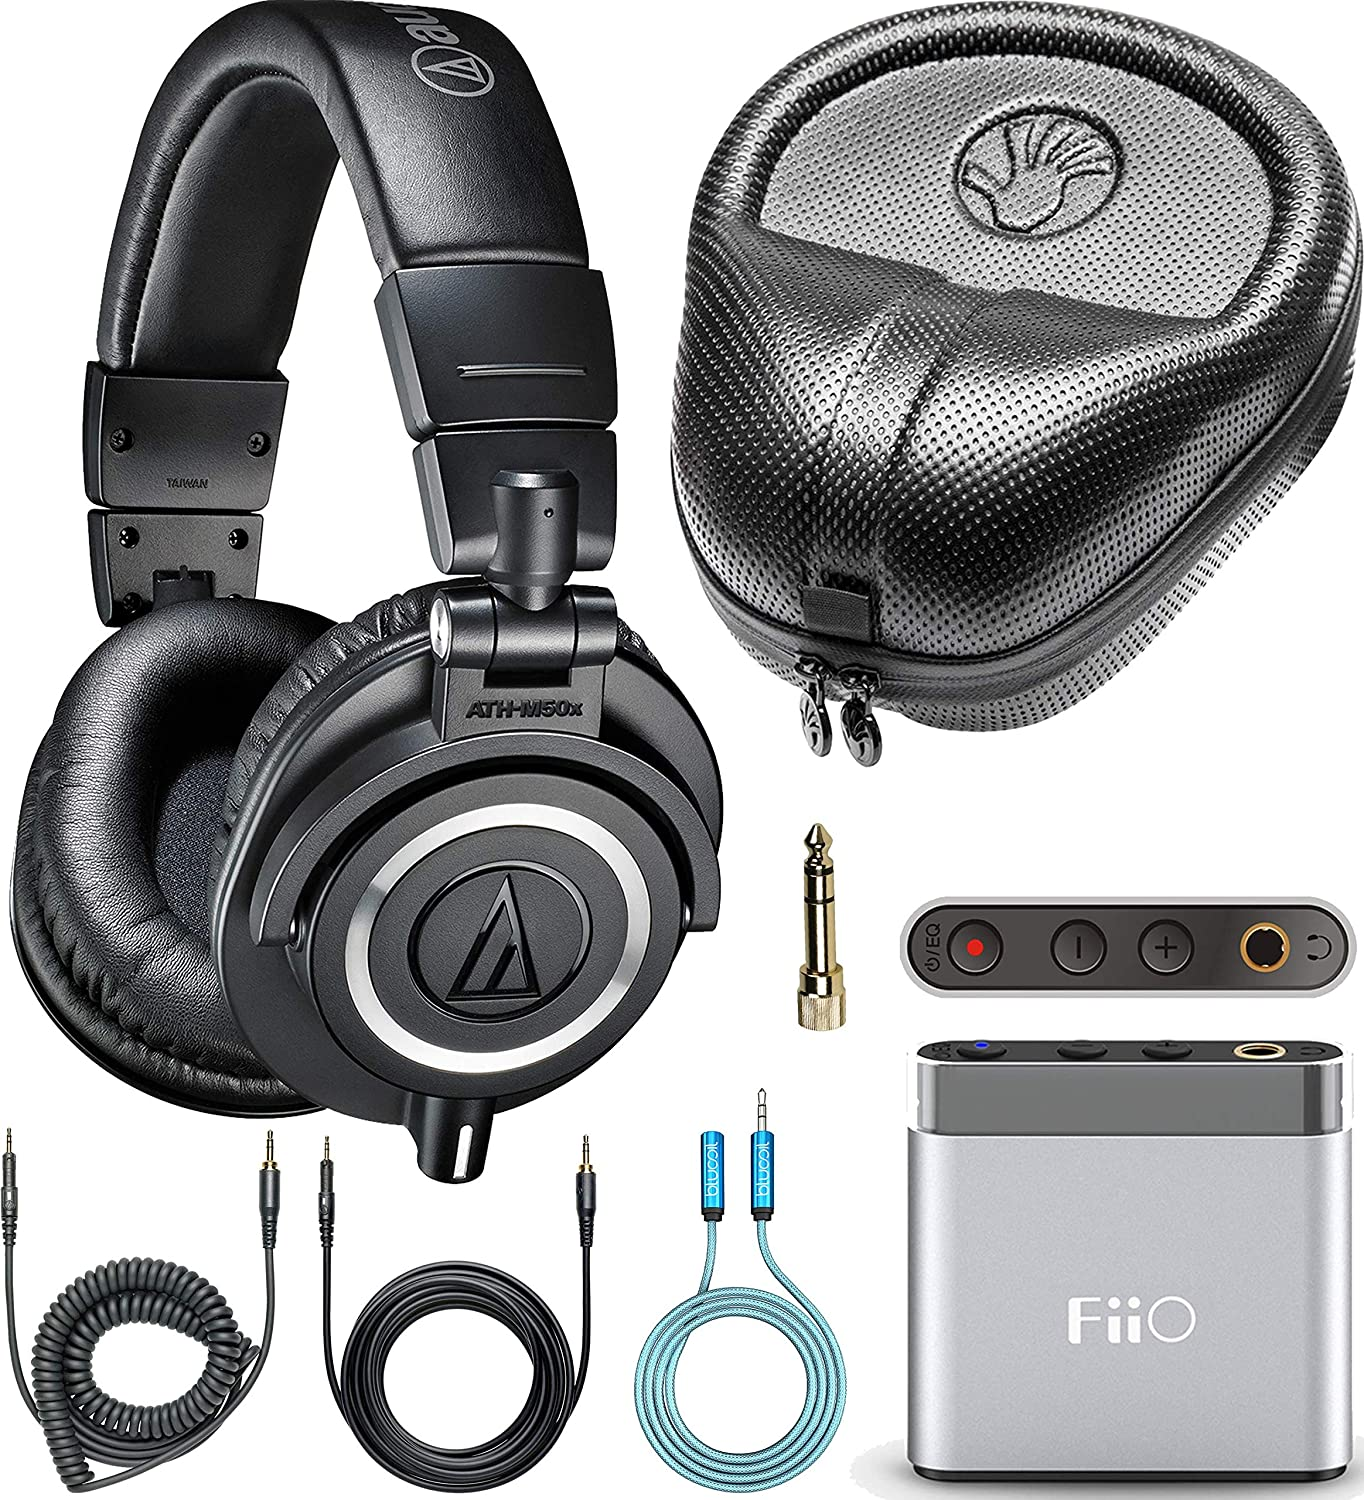 Audio-Technica ATH-M50x Closed Back Headphones Bundle with FiiO A1 Portable Headphone Amplifier (Silver), SLAPPA Full Sized Hardbody PRO Headphone Case and Blucoil 3.5mm Audio Extension Cable